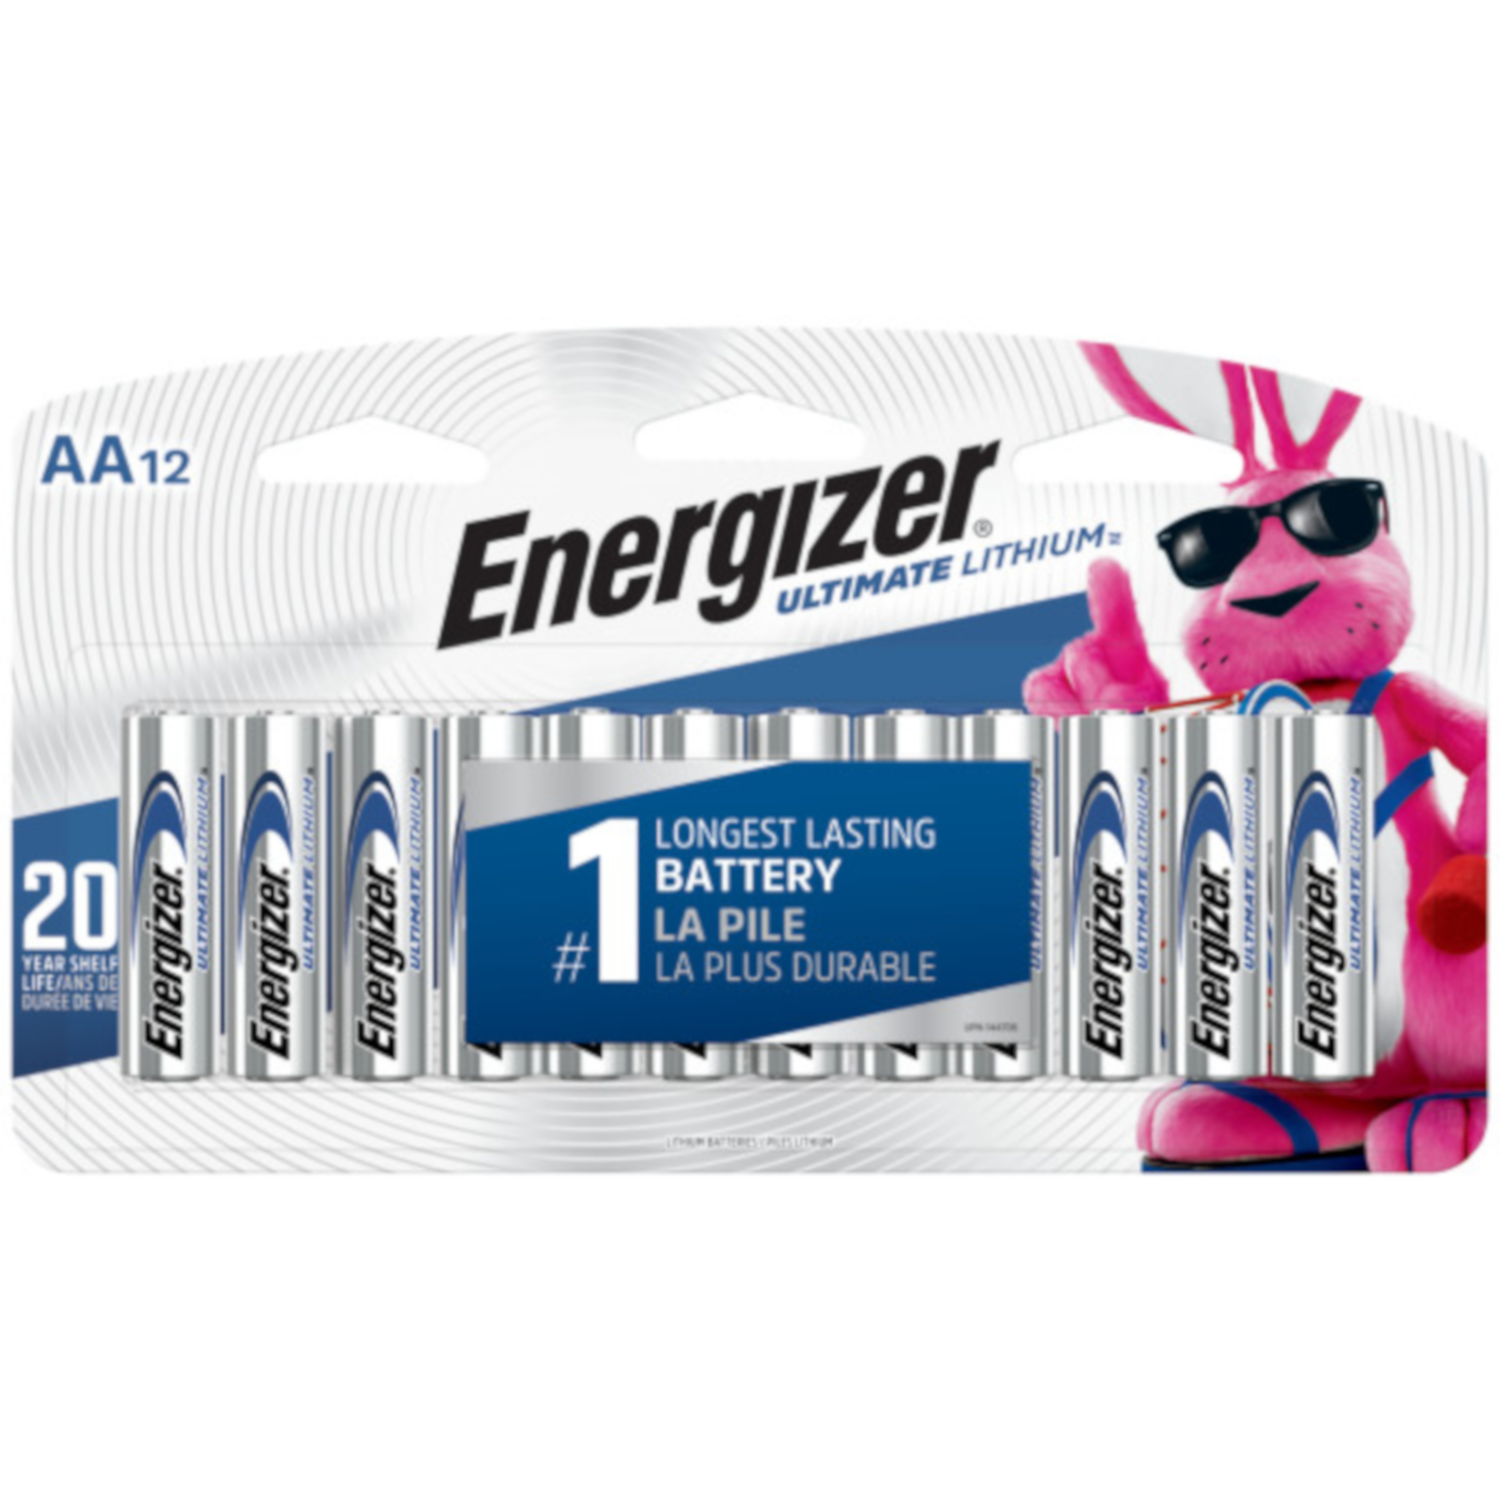 Energizer  Ultimate  Lithium Ion  Batteries  AA  12 pk